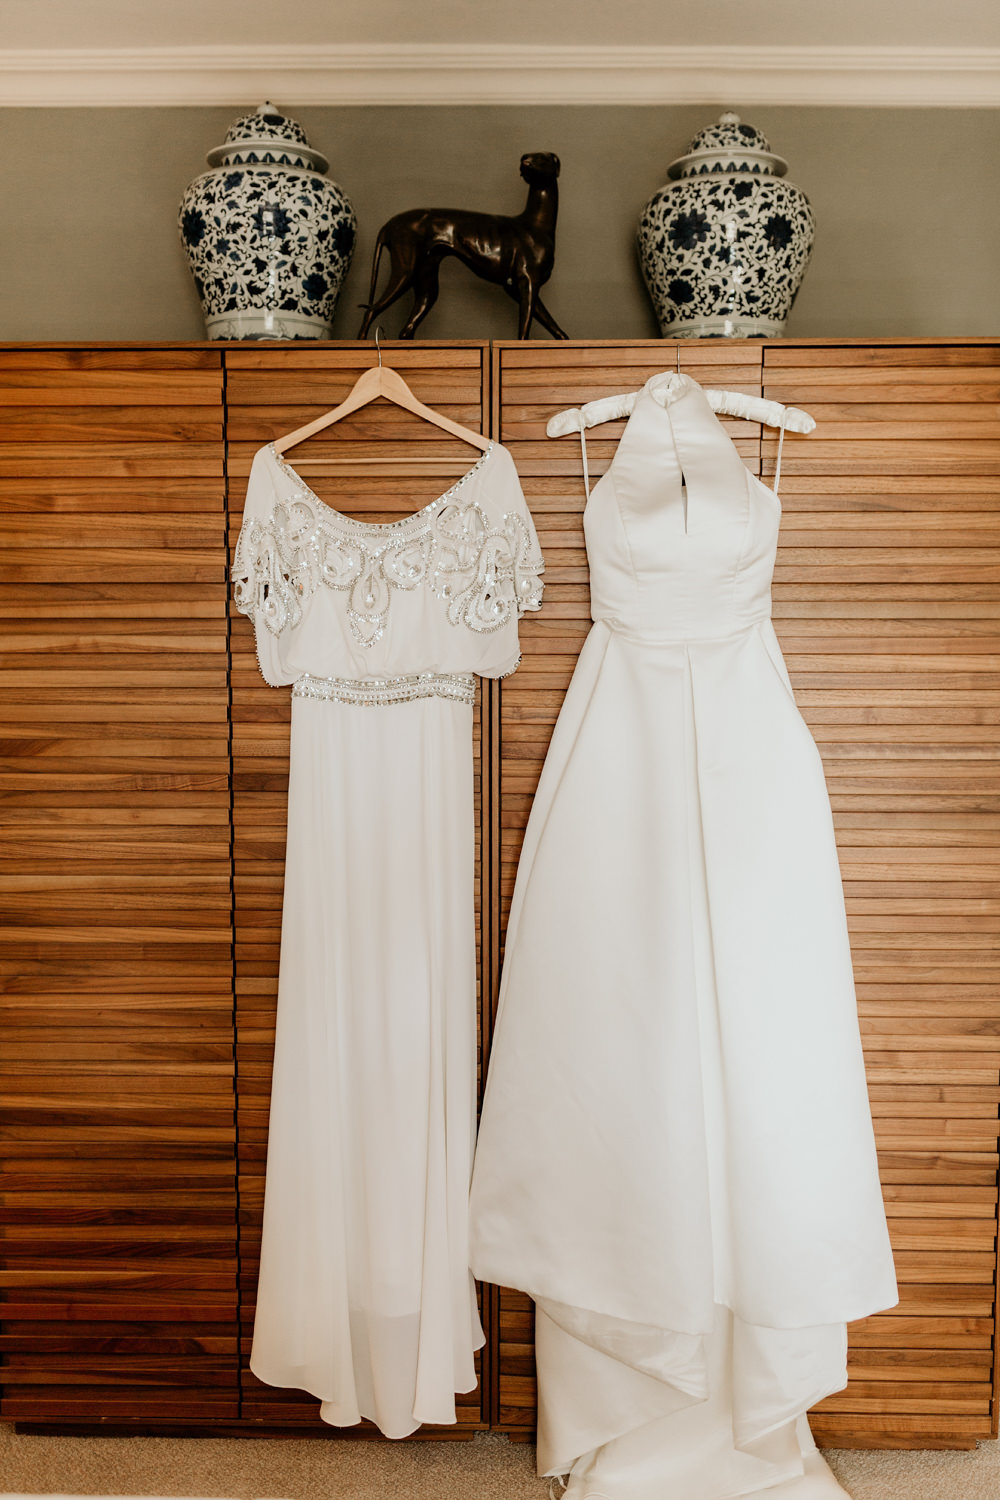 Alice Temperley wedding dress and a Jesus Peiro wedding dress